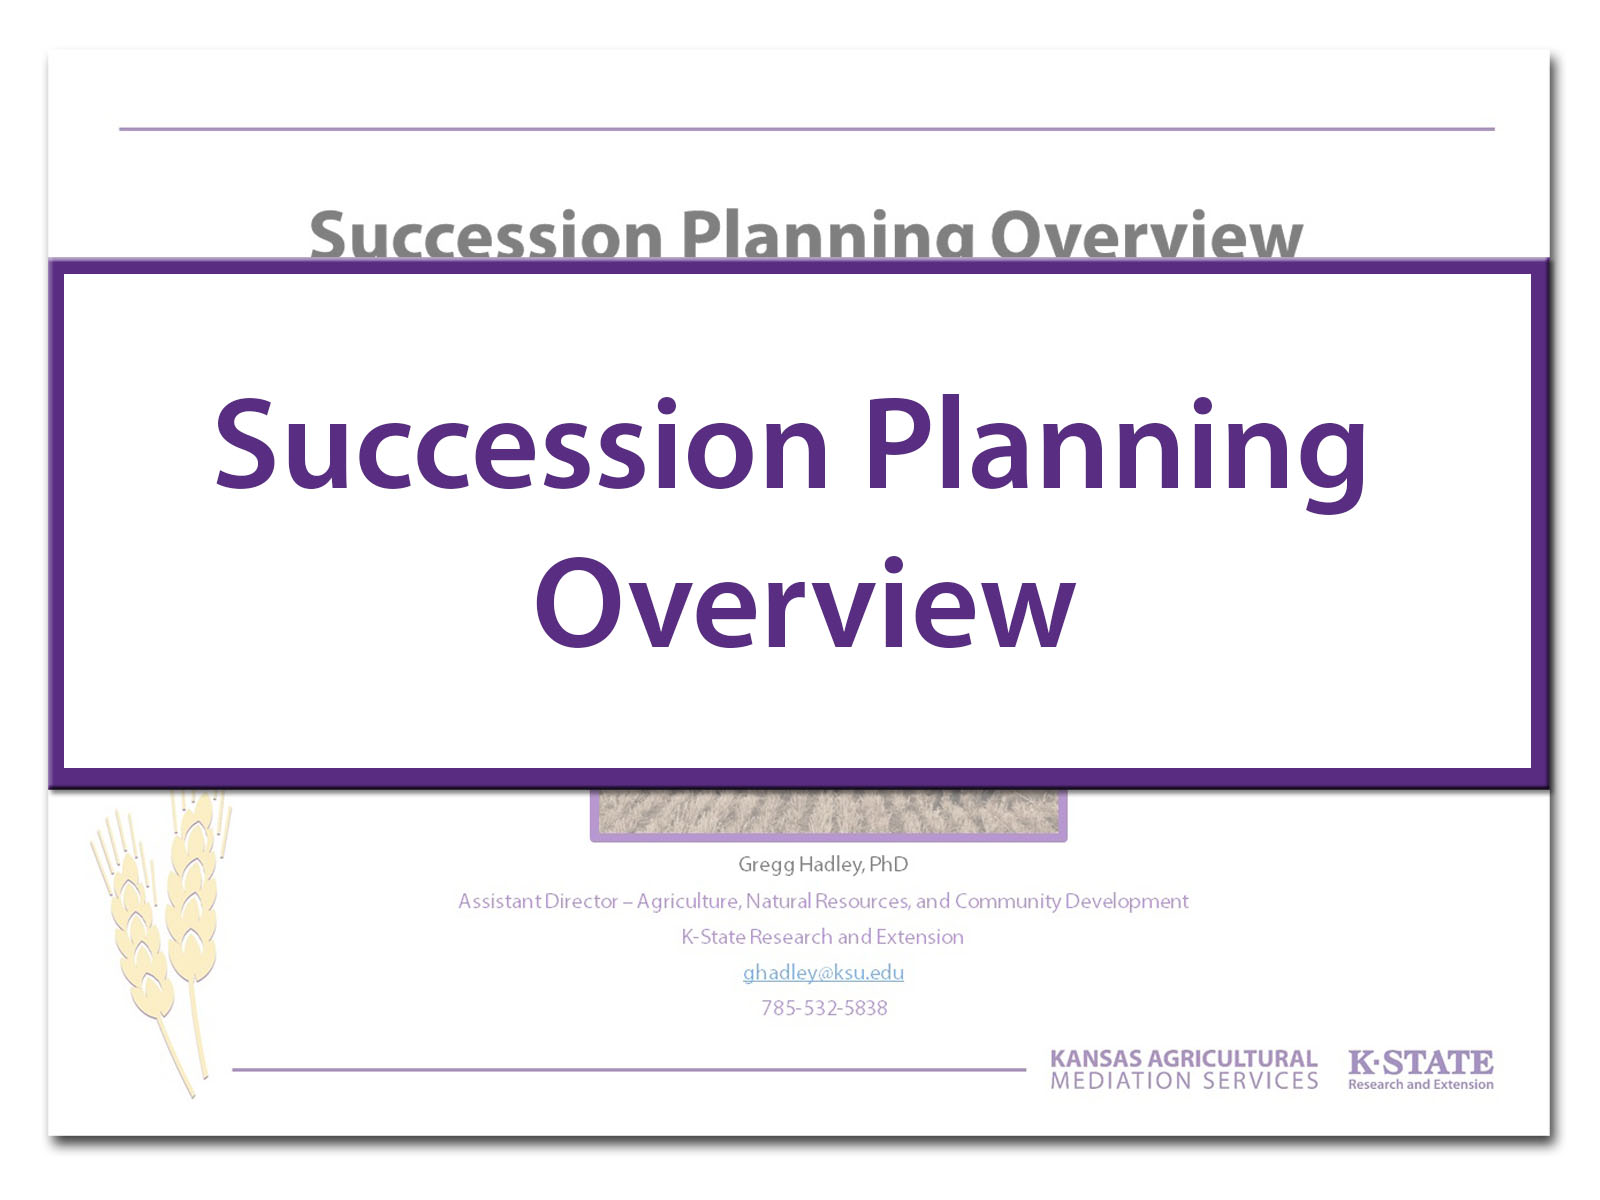 Succession Overview